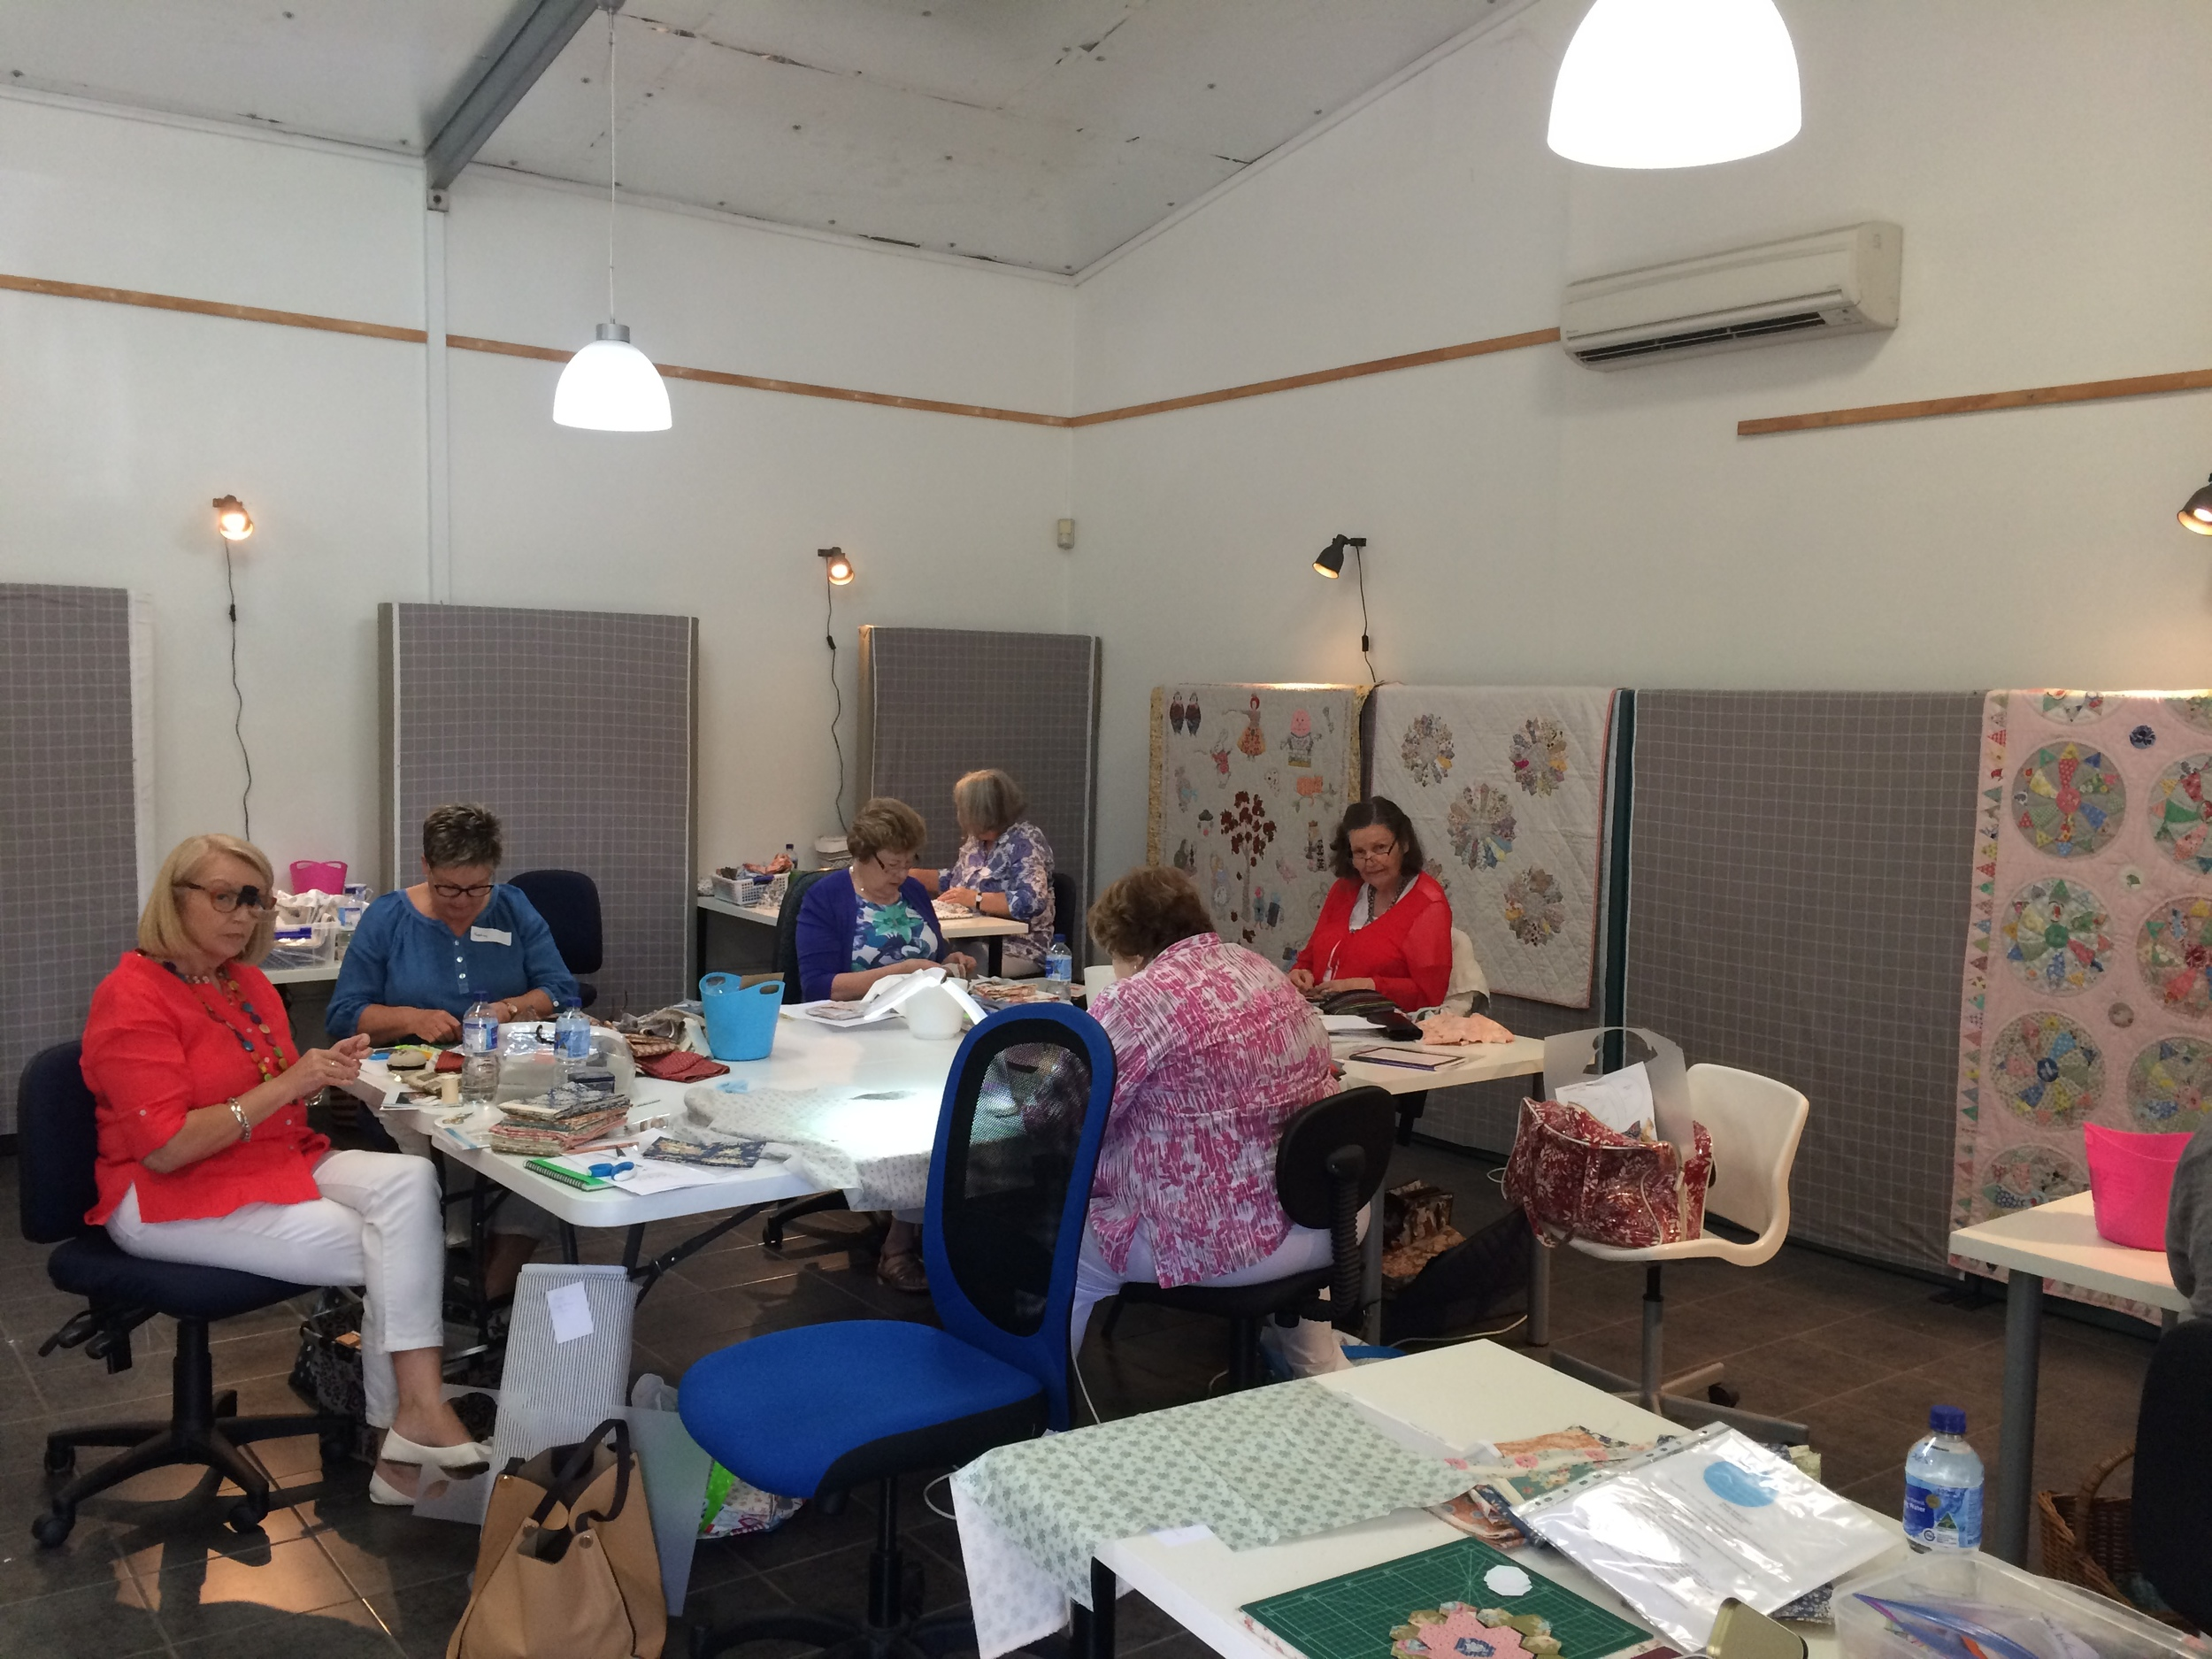 Busily stitching in the well lit studio.